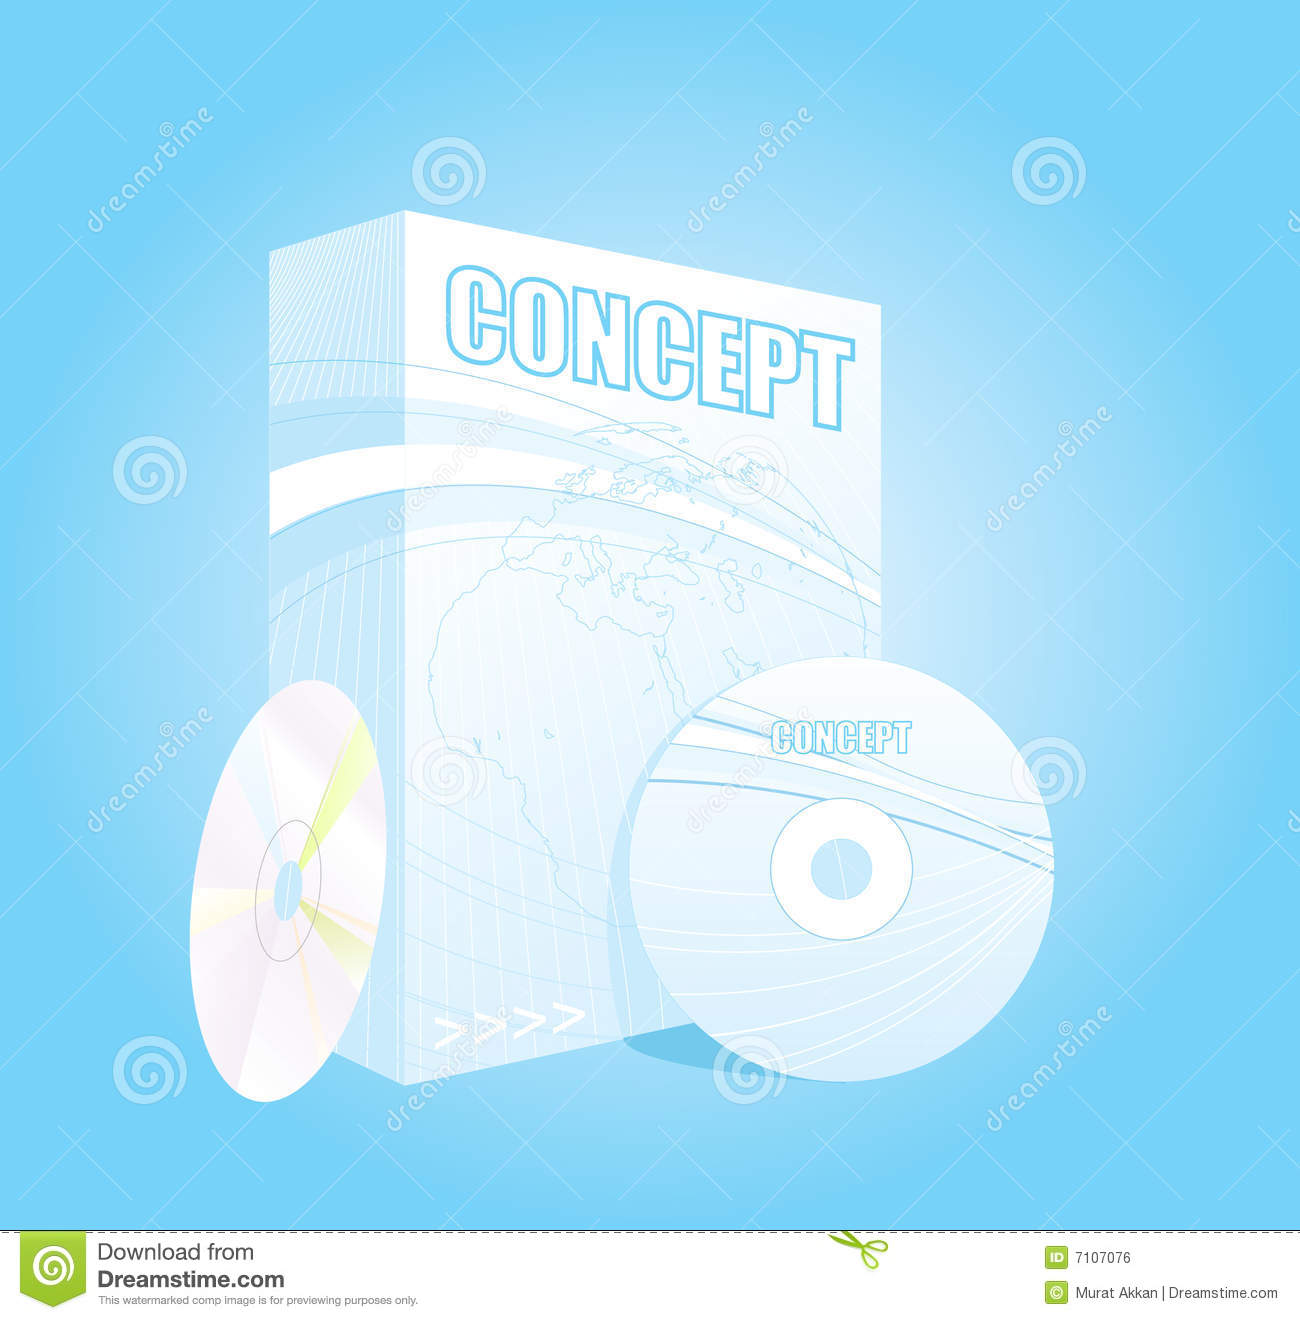 Vector Software Royalty Free Stock Image Image 7107076